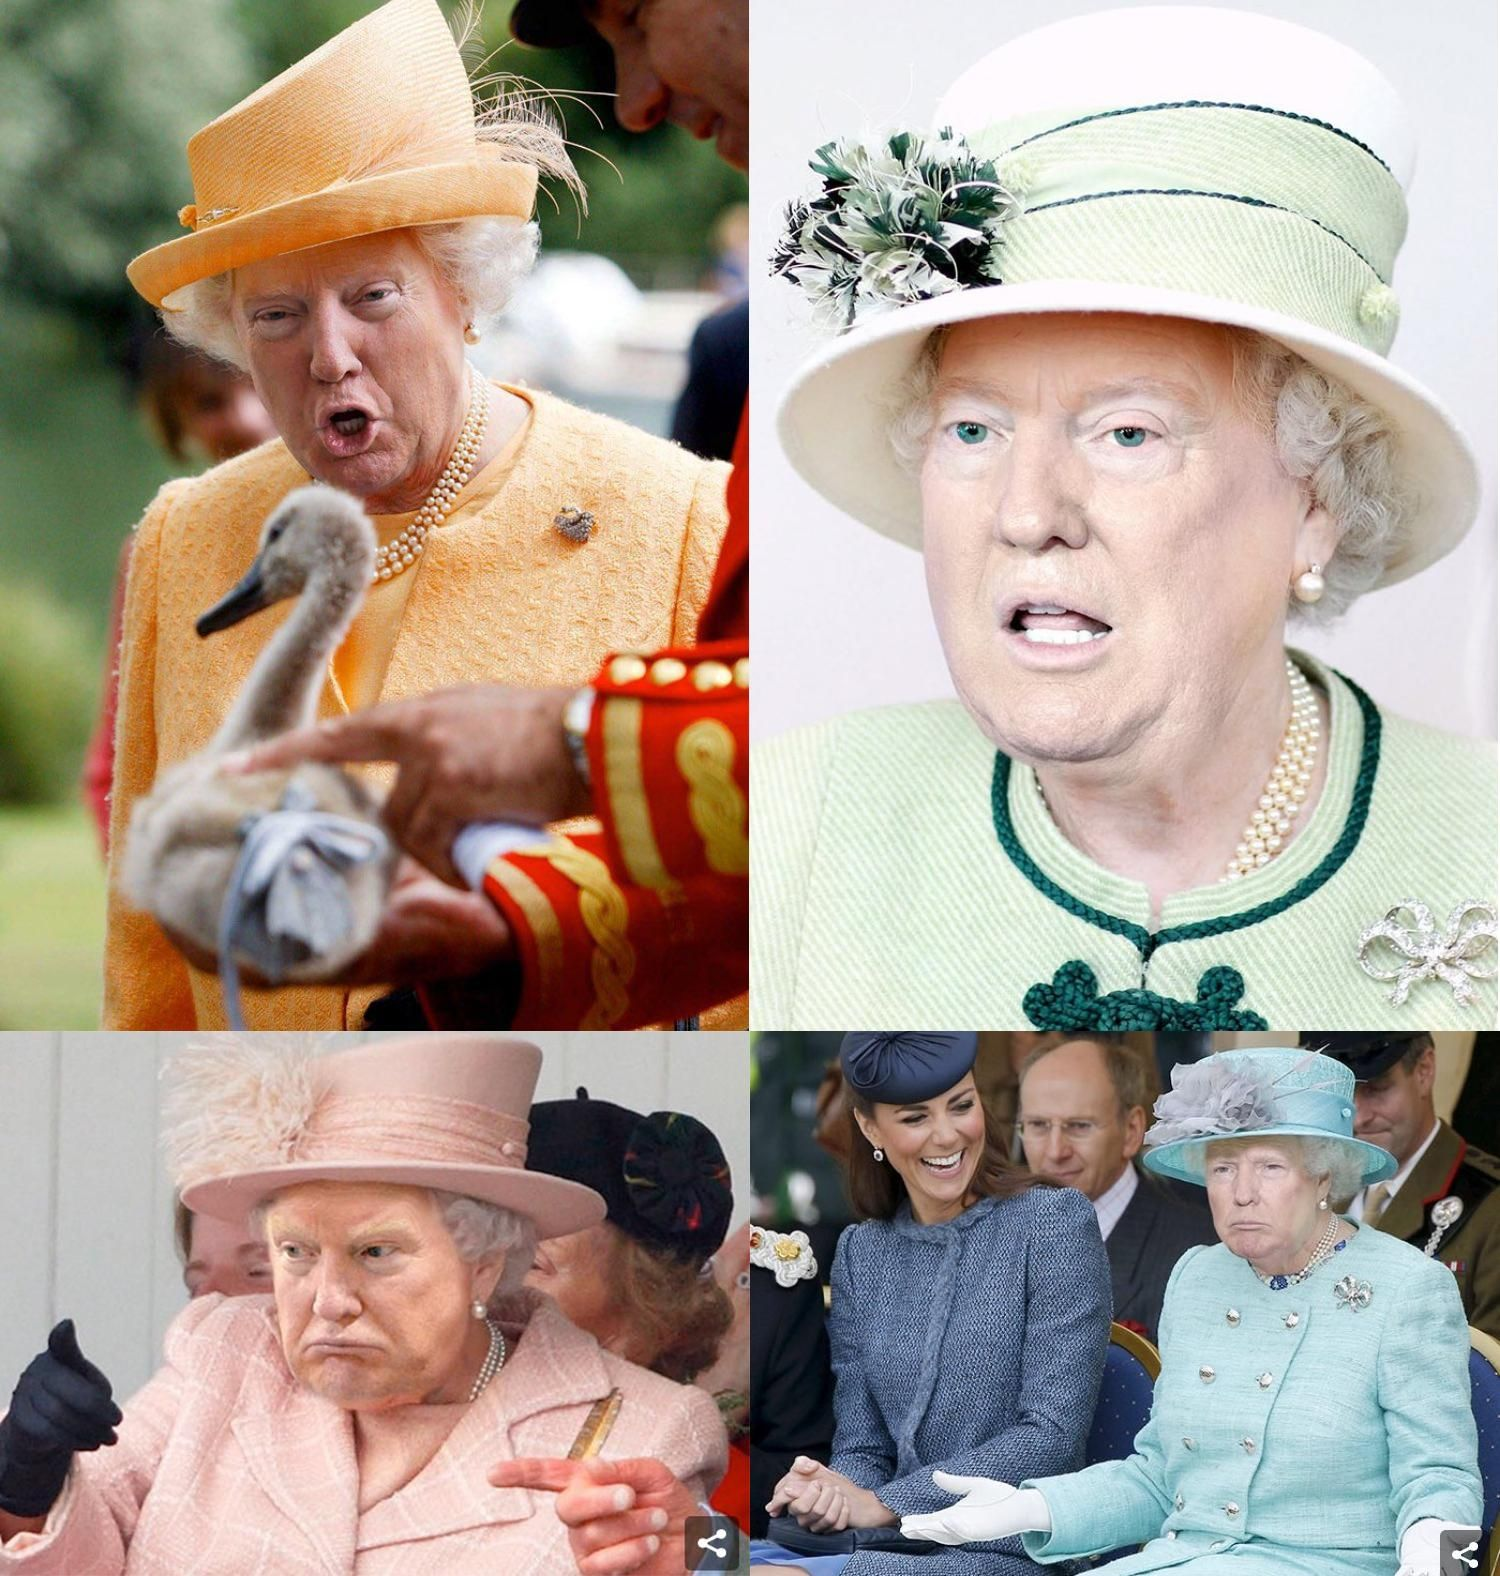 Photoshopping Trump S Face On The Queen Of England Is Art Queen Elizabeth Memes Queen Meme England Funny